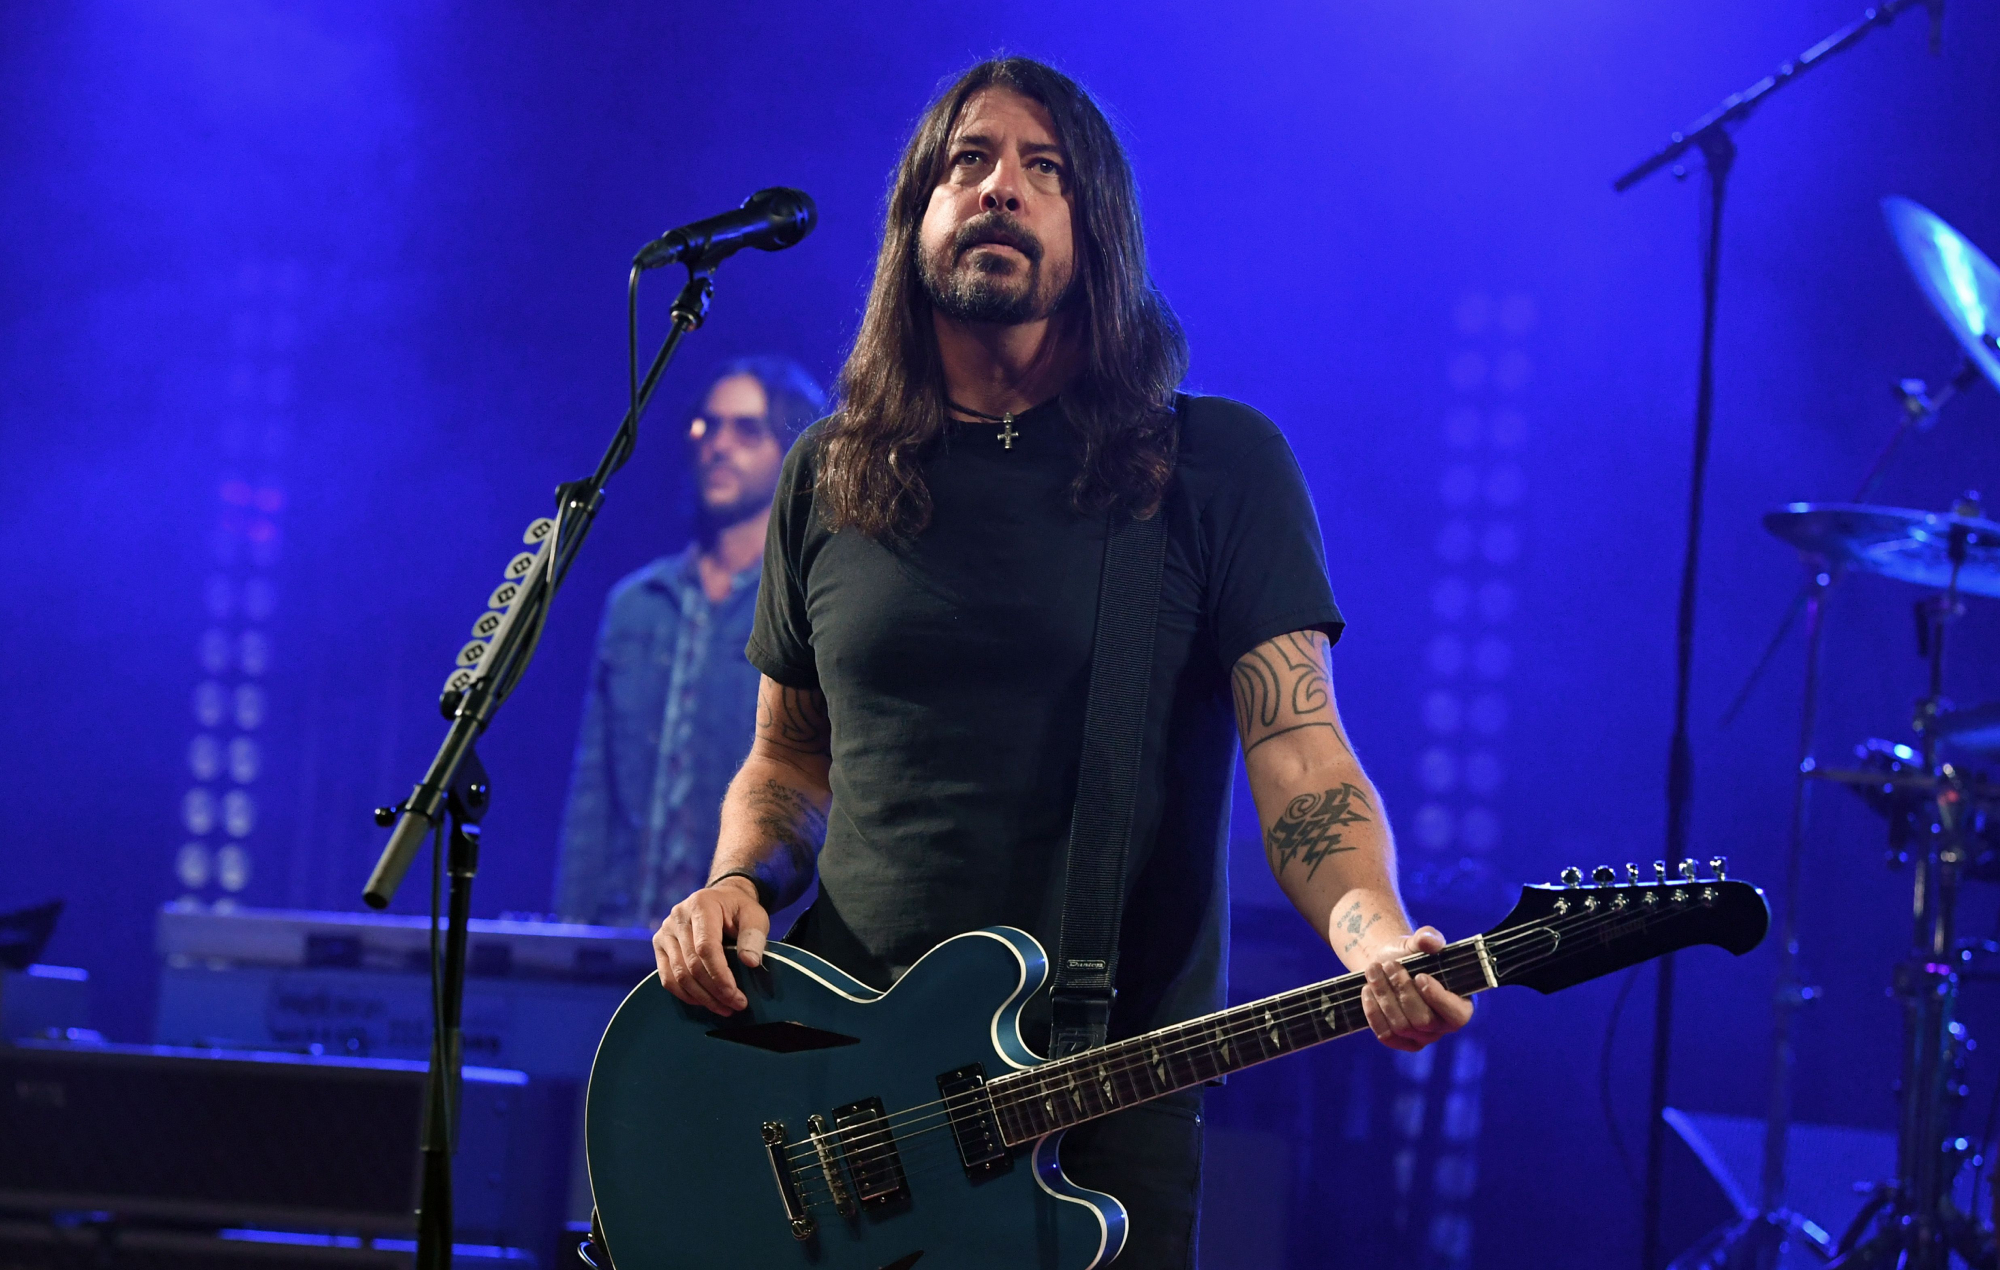 Foo Fighters share snippets of new tracks 'Cloudspotter' and 'Making A Fire'